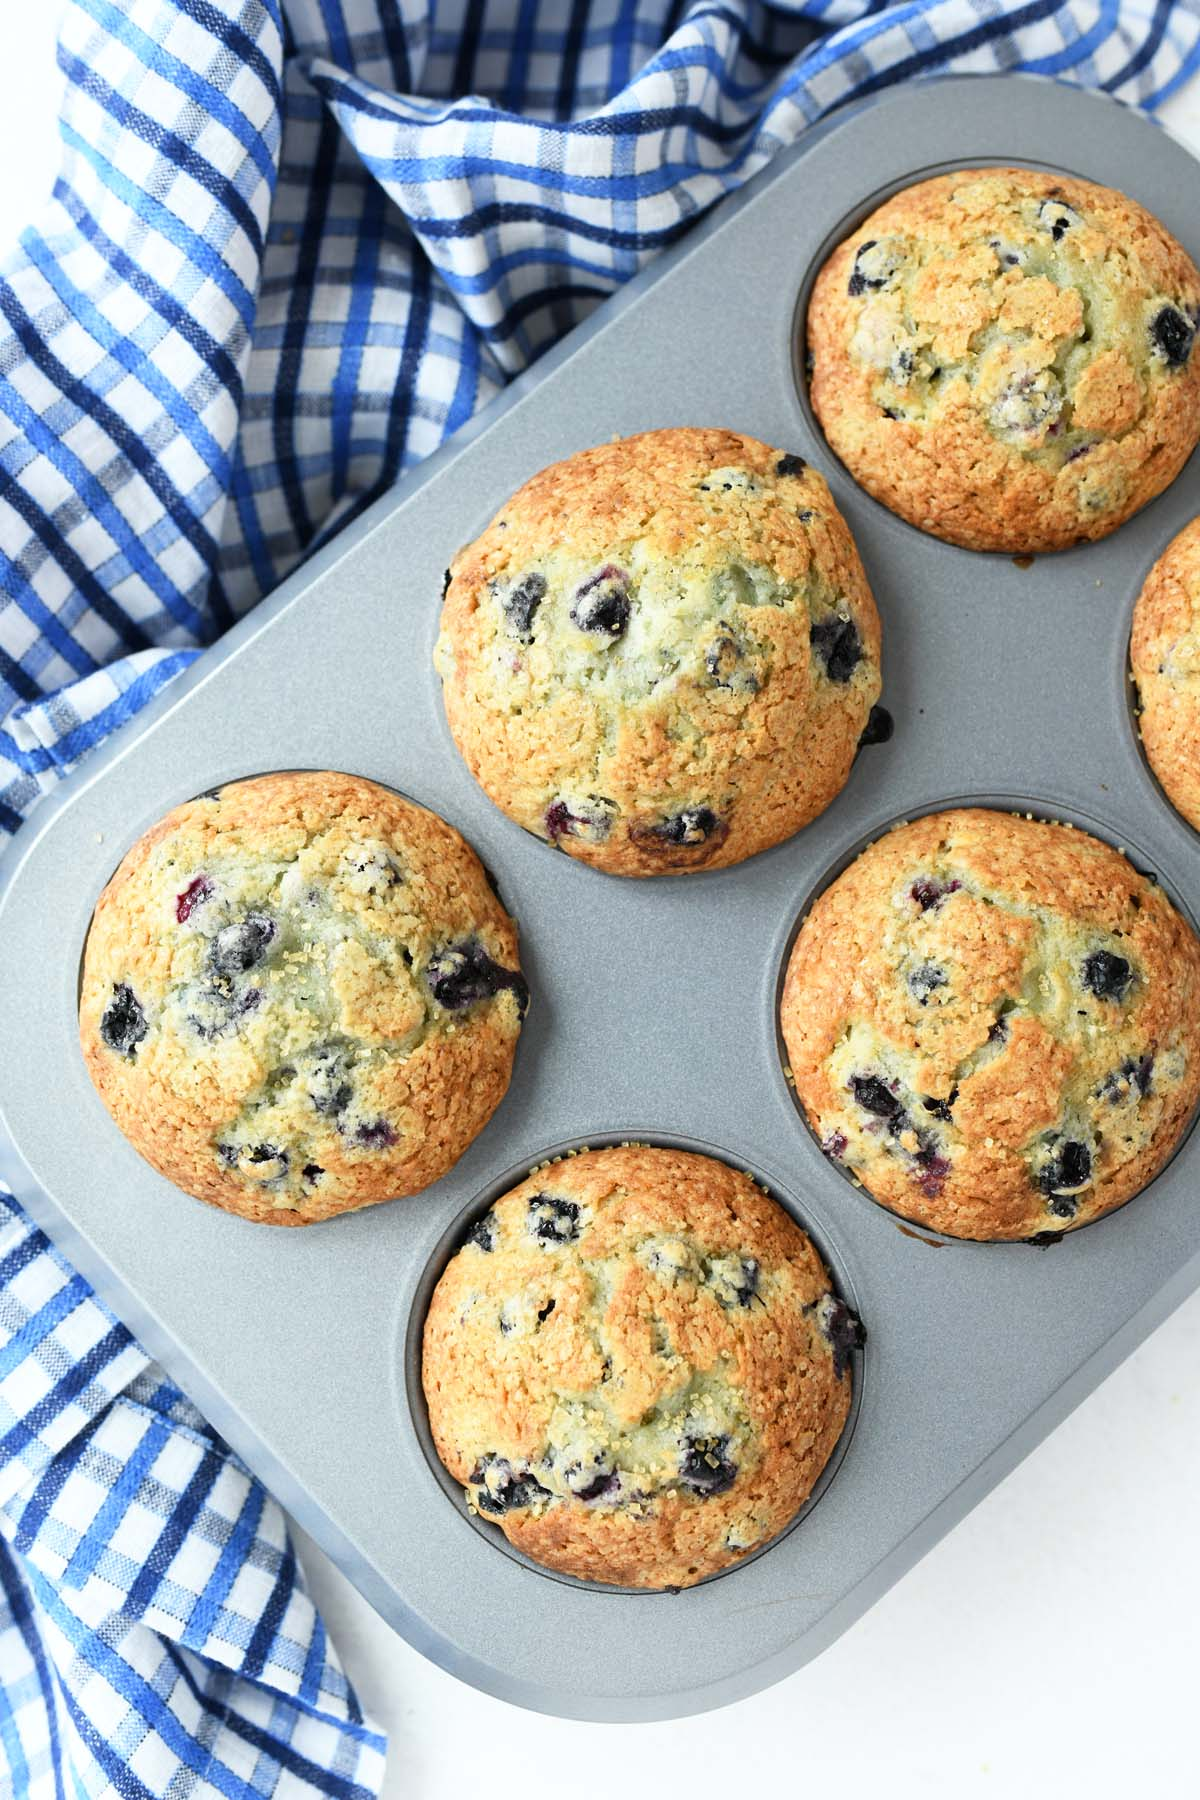 Jumbo Blueberry Muffins in a silver muffin tin with a blue plaid napkin.